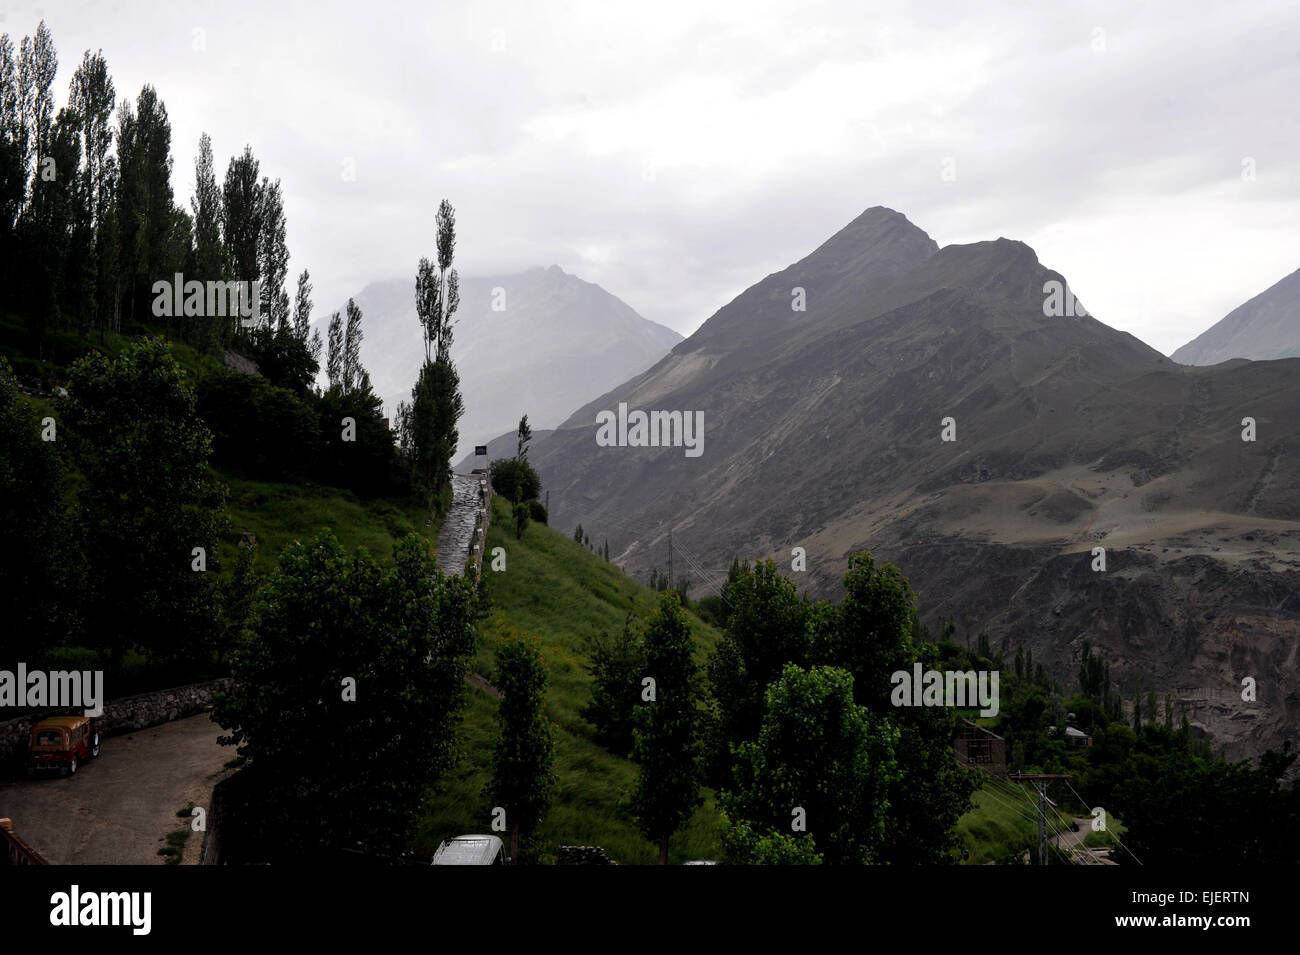 Hunza valley as viewed from Karimabad,  Pakistan, January 2010. - Stock Image